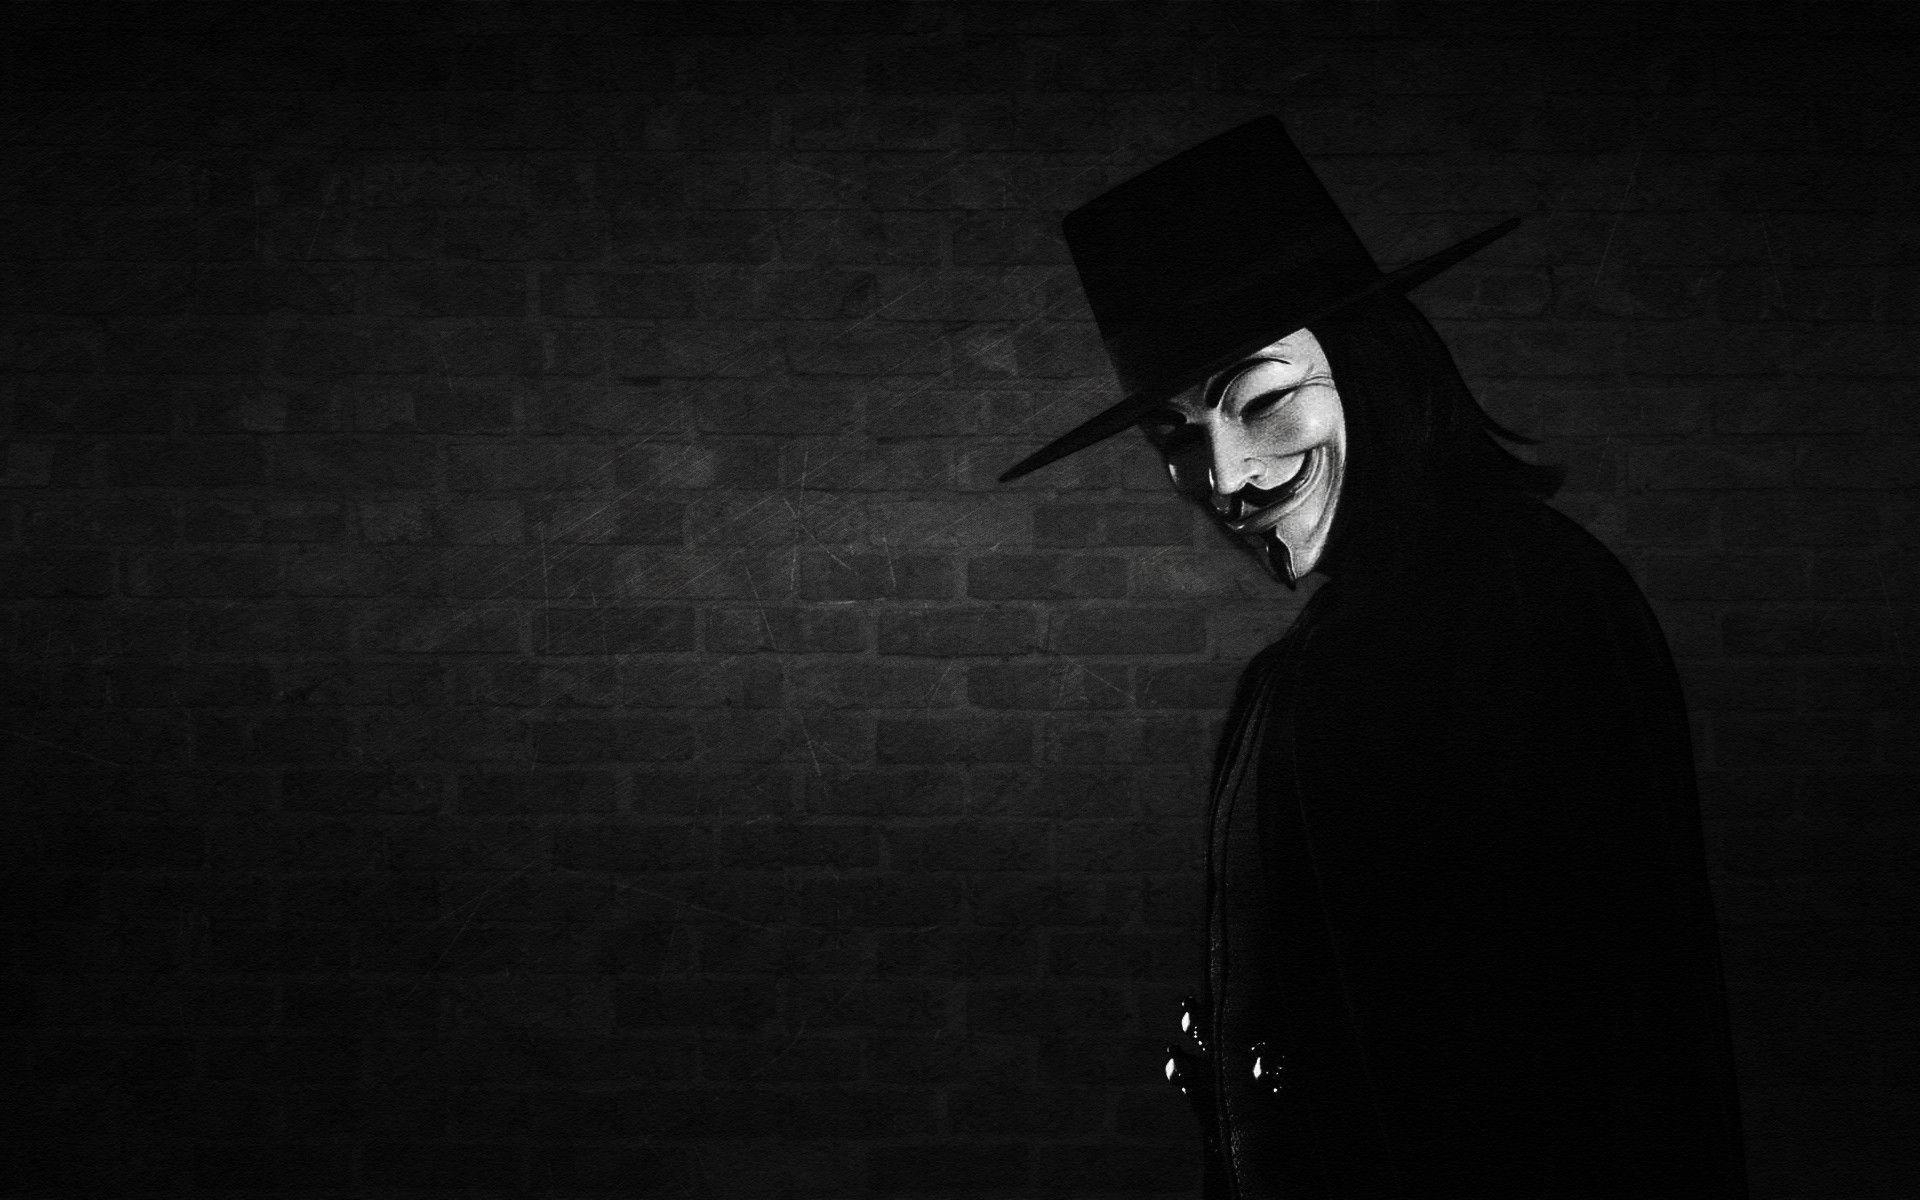 v for vendetta wallpapers - wallpaper cave